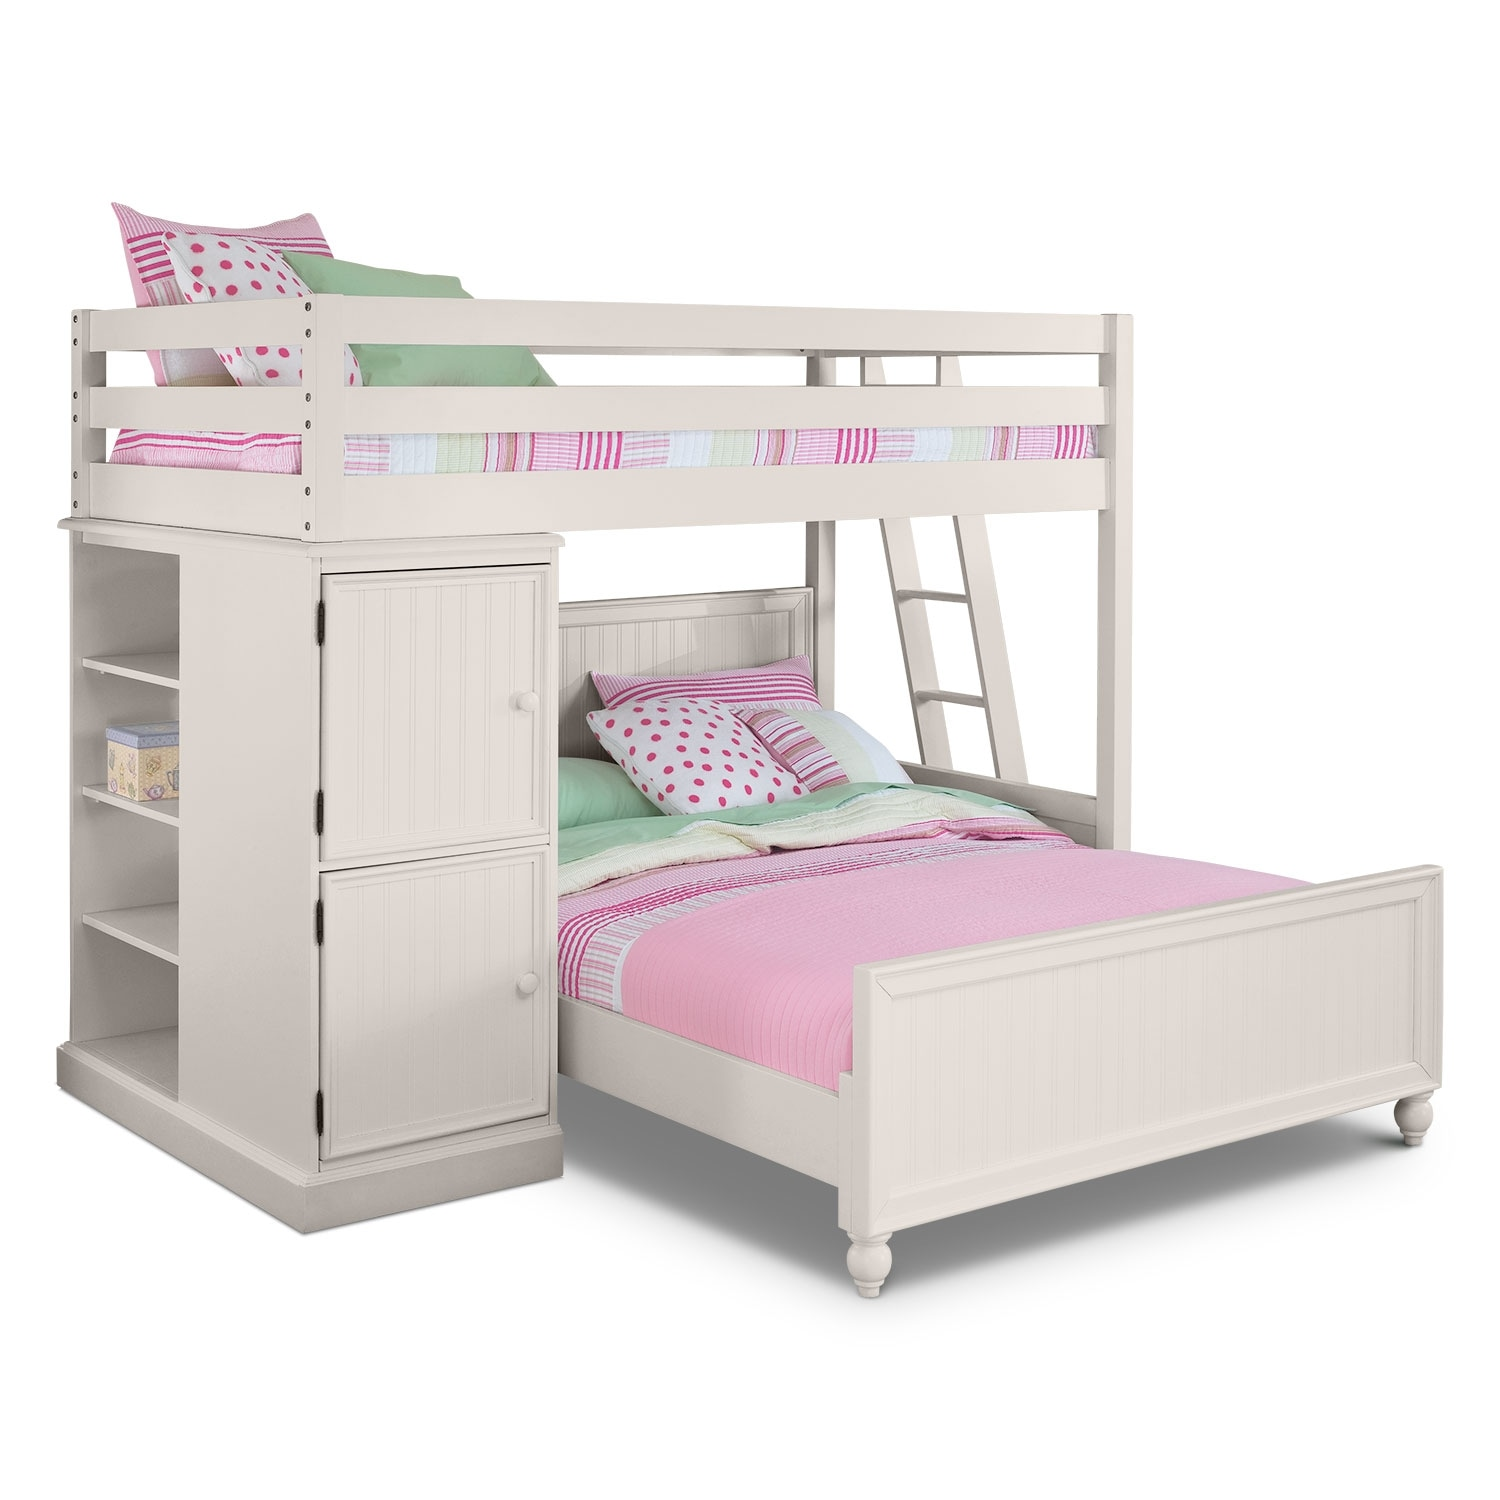 Colorworks Loft Bed with Full Bed White American  : 375902 from www.americansignaturefurniture.com size 1500 x 1500 jpeg 151kB